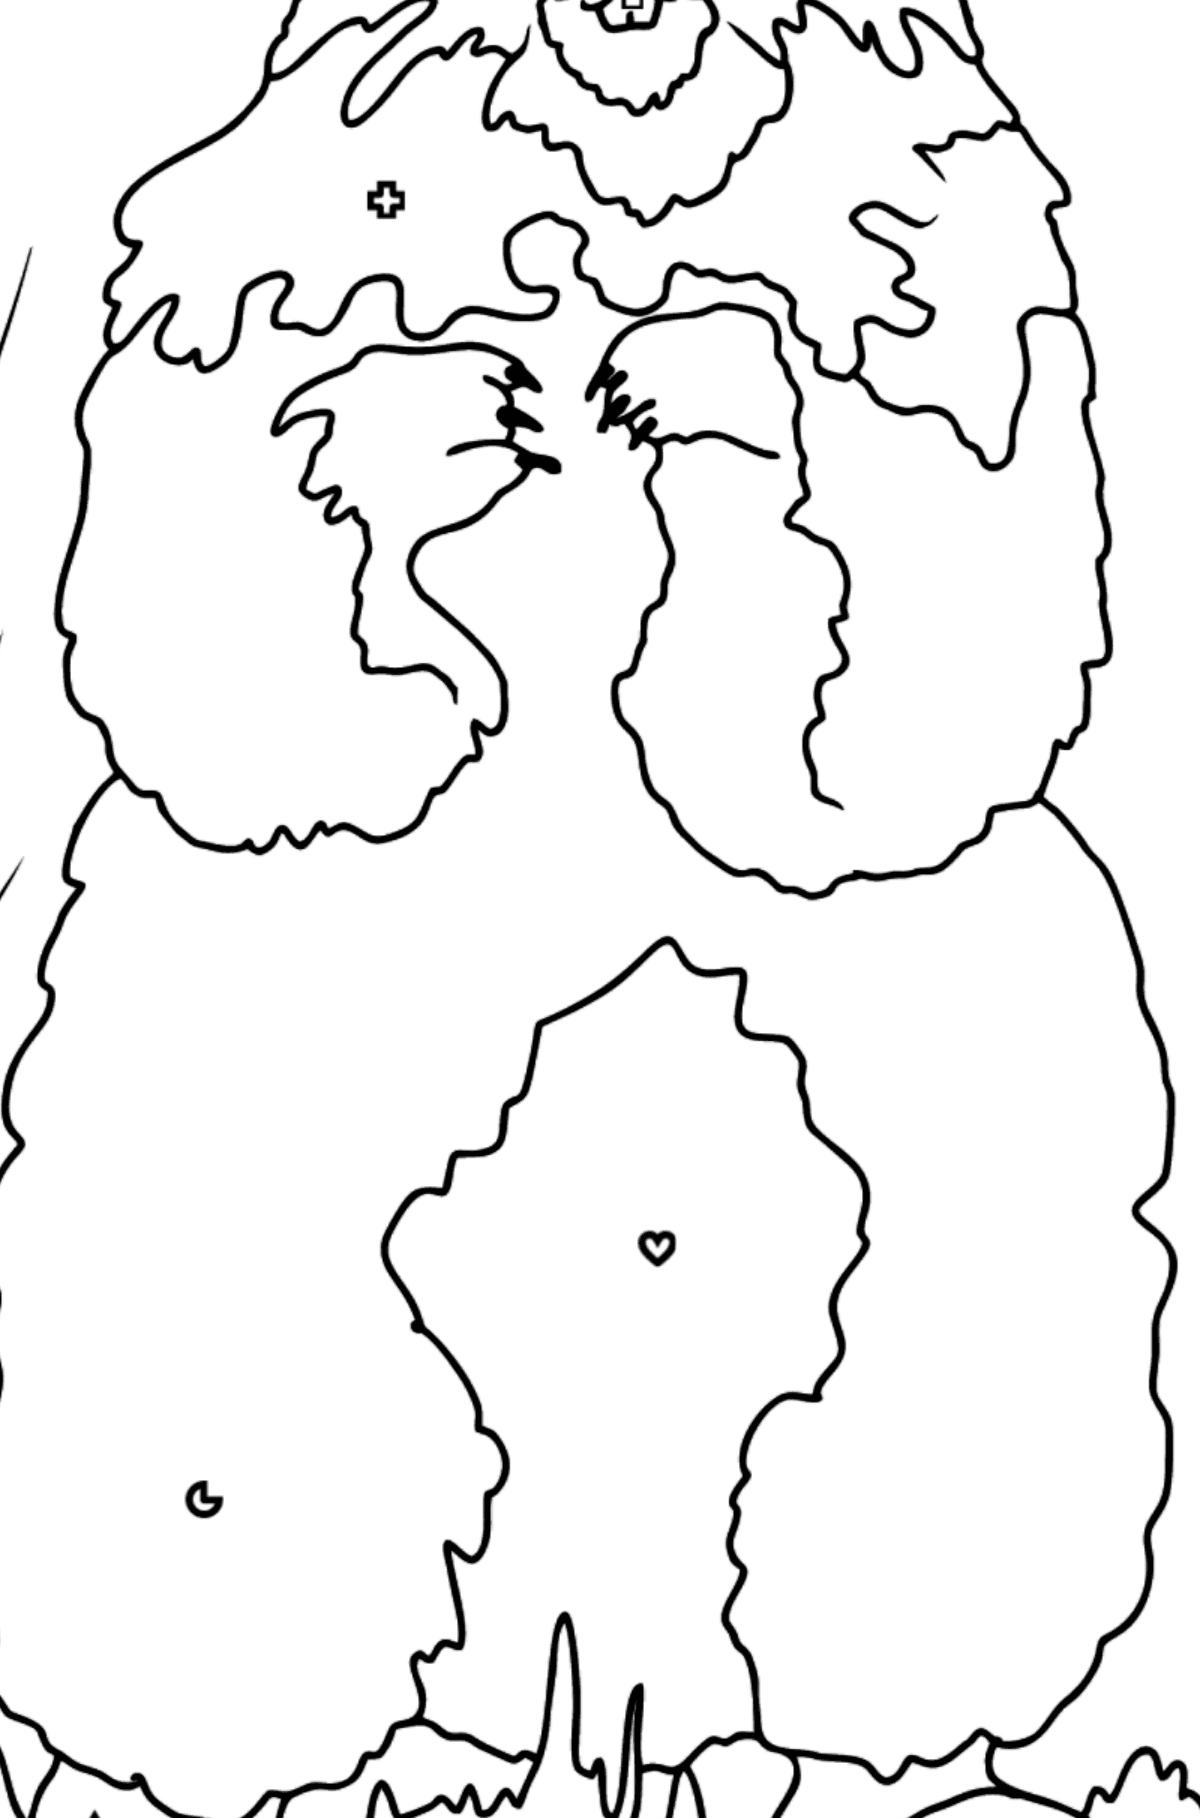 Coloring Page - A Groundhog is Looking Around - Coloring by Geometric Shapes for Kids